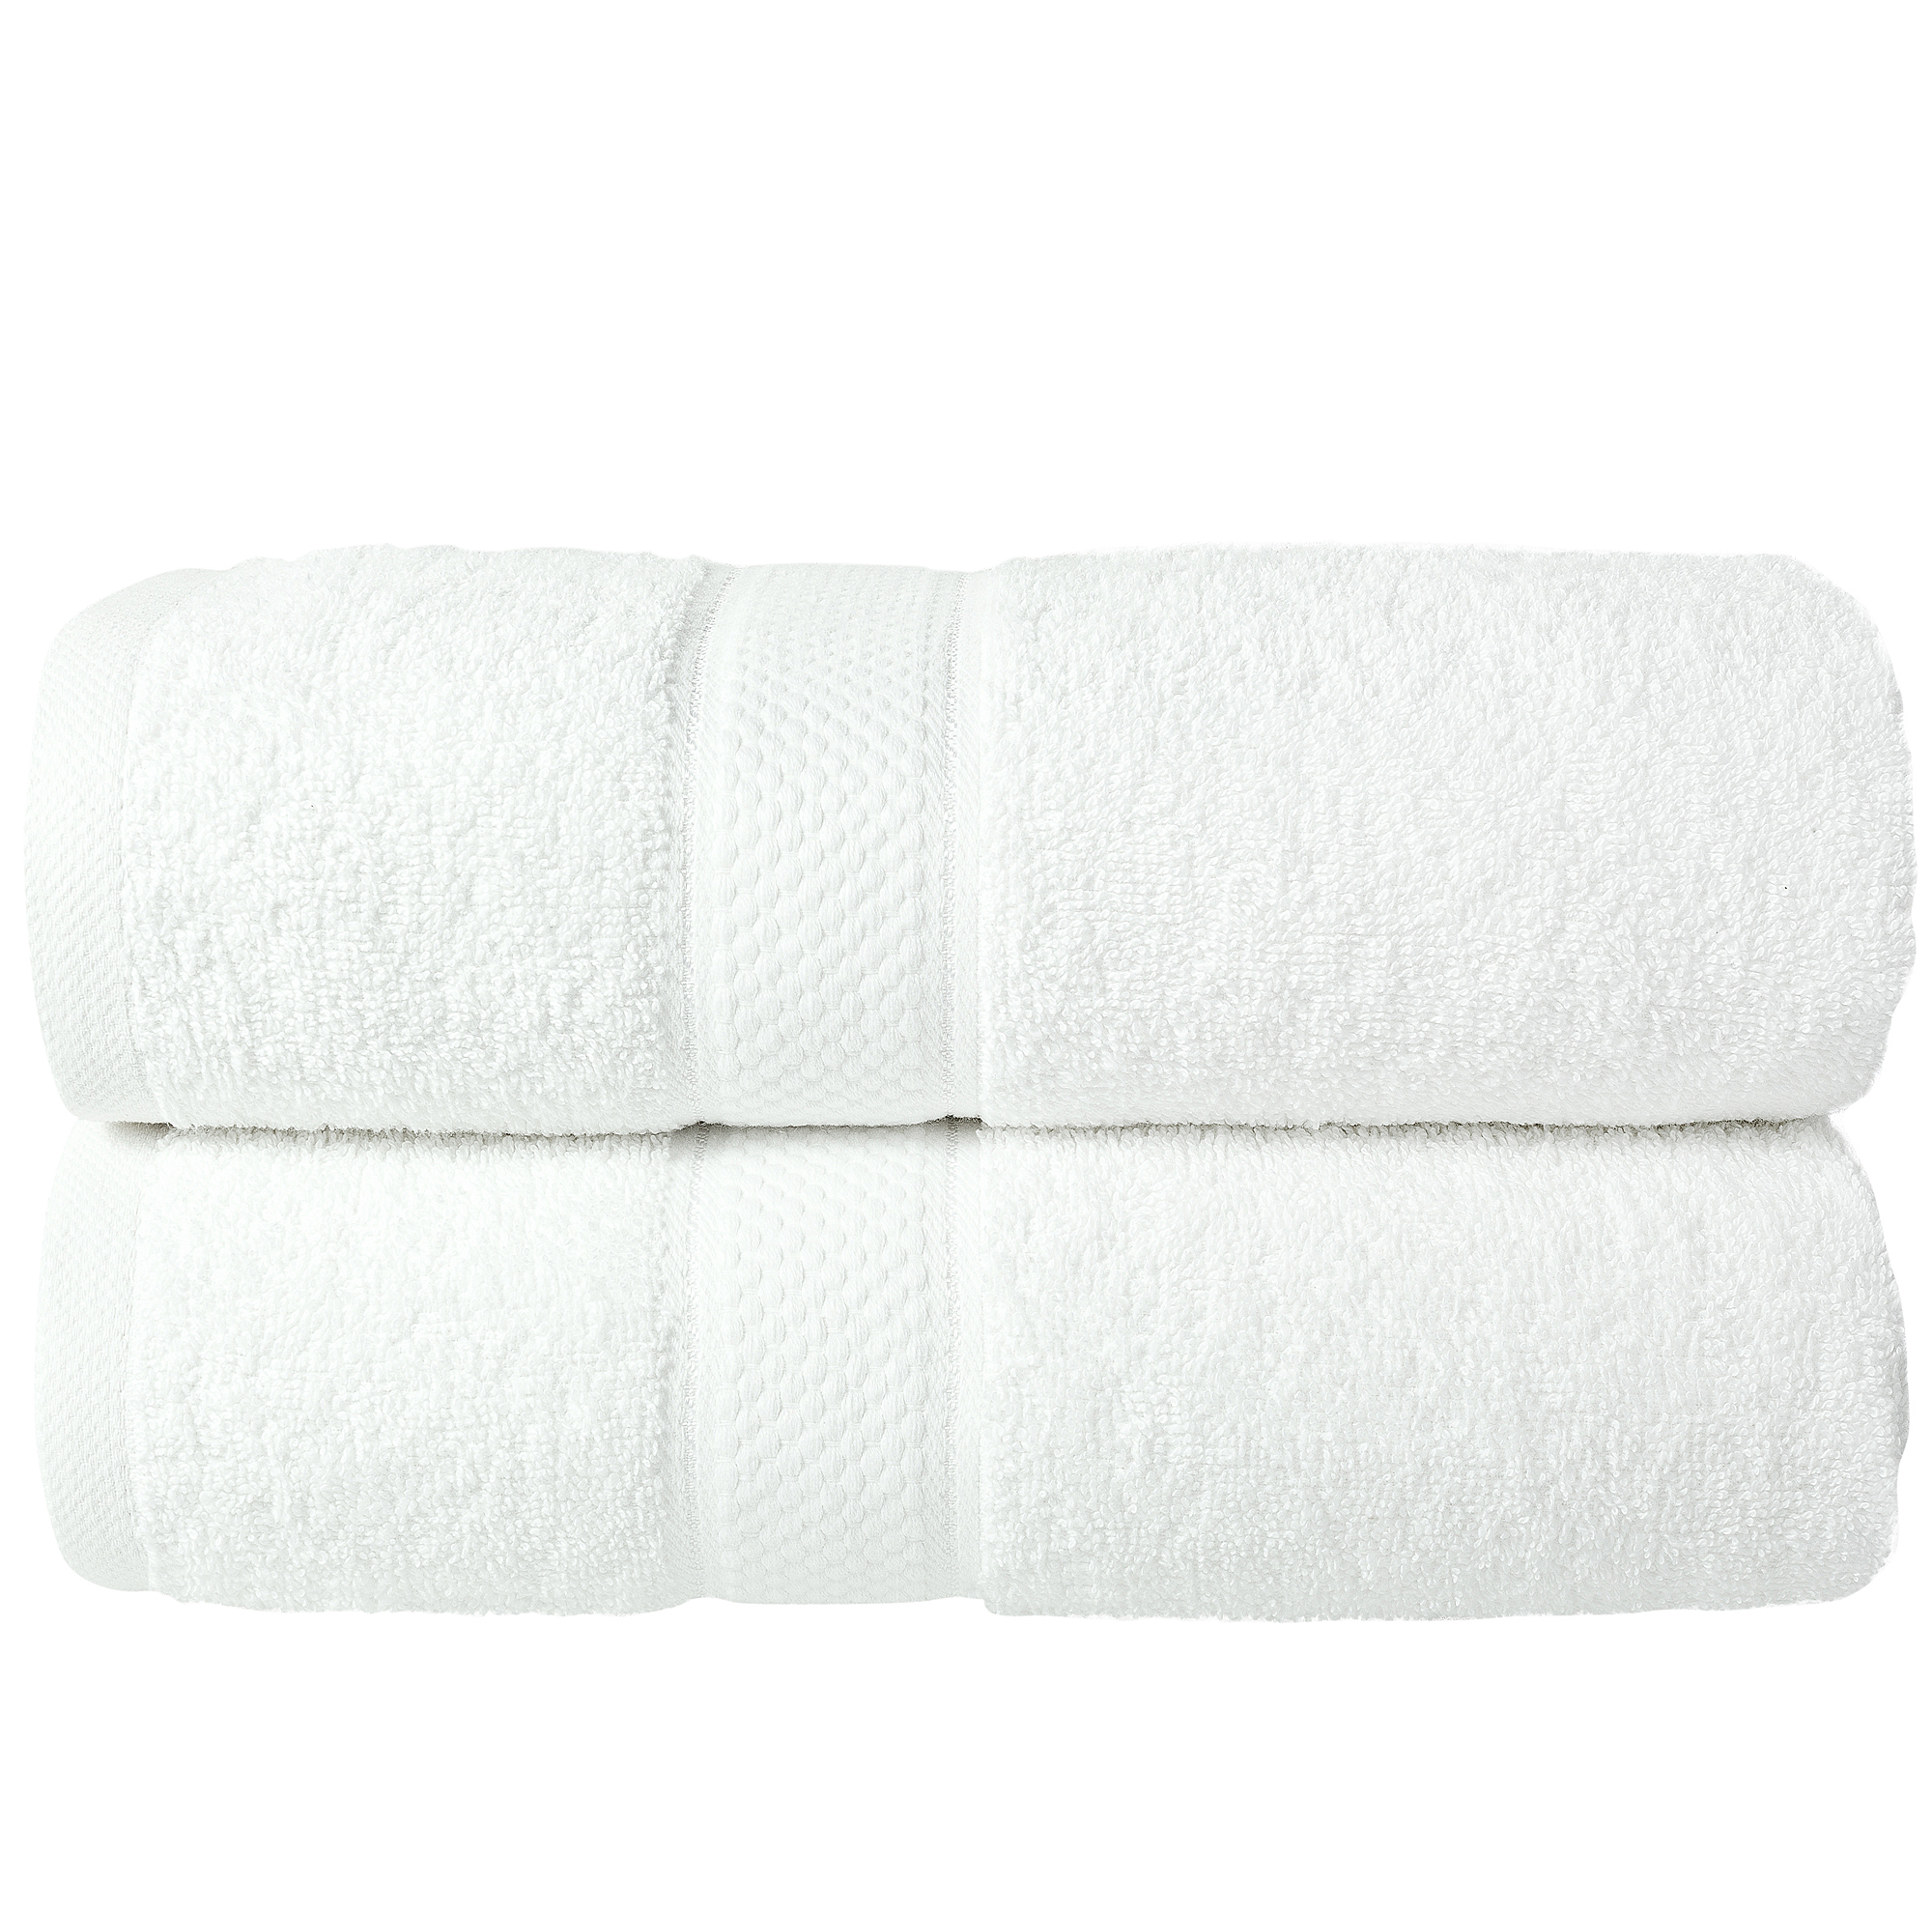 2 Pcs 100 % Cotton Premium Bath Sheet Towel Bale Set White Plain